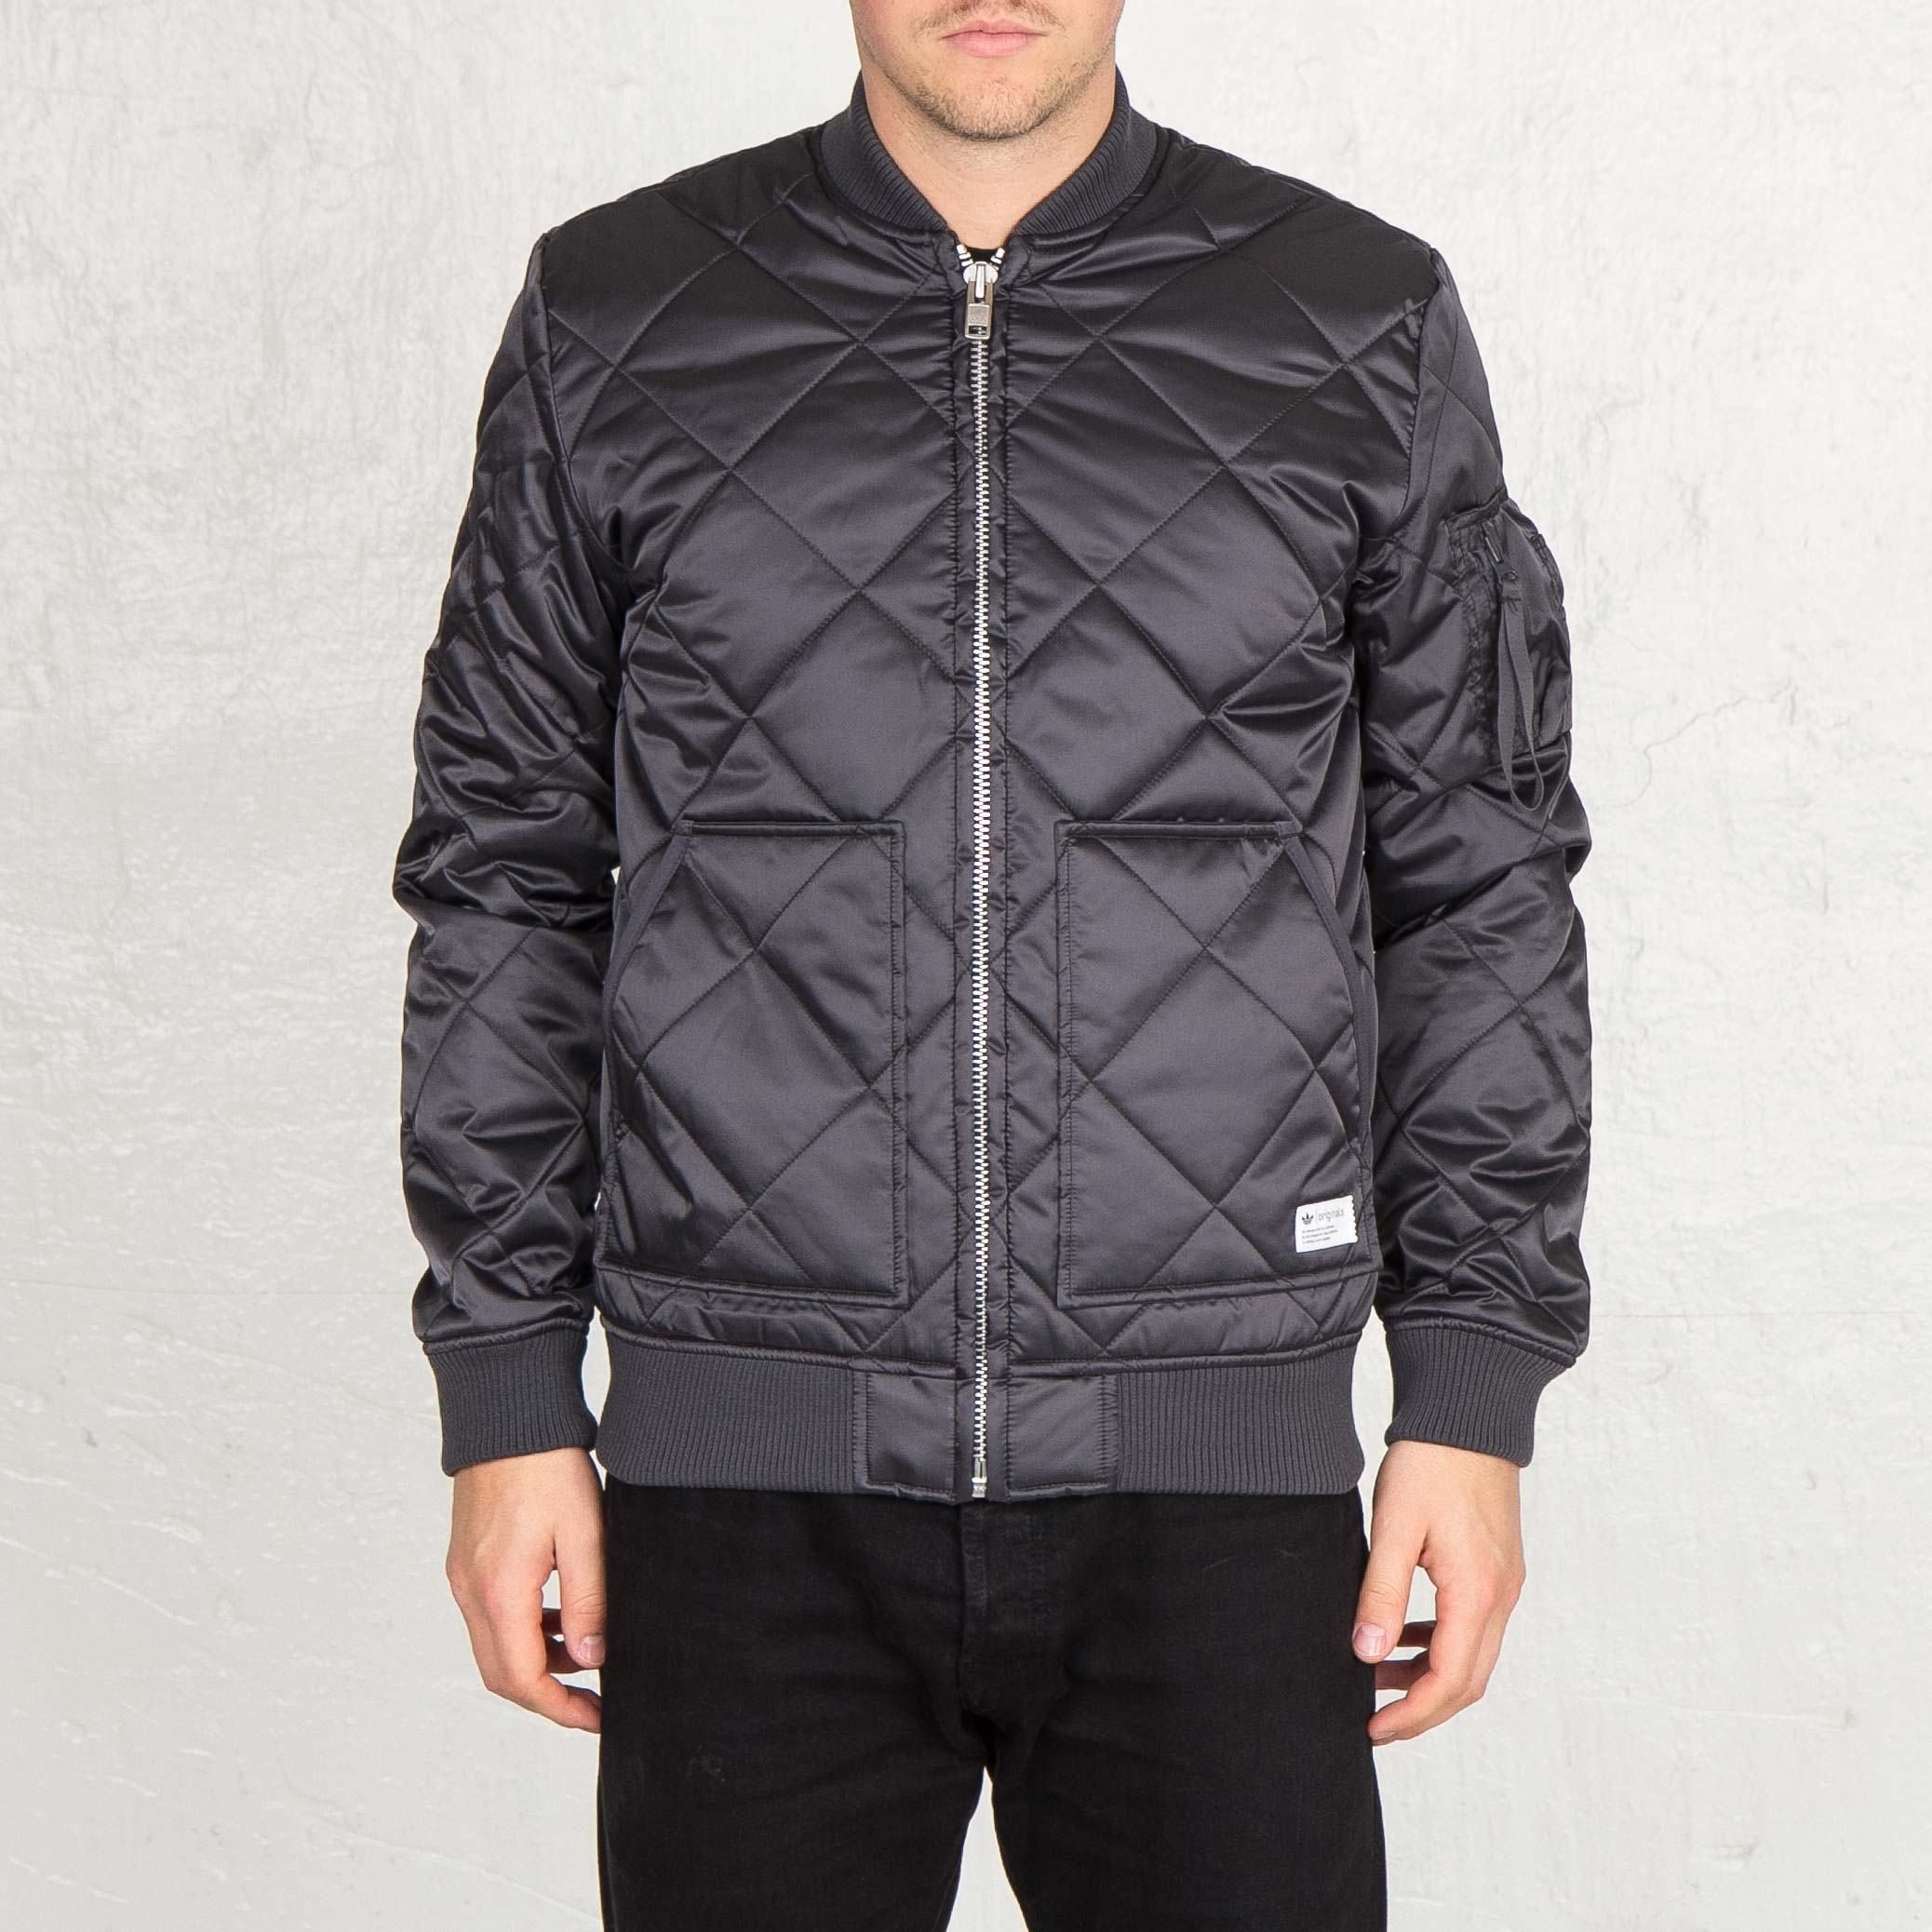 eaef08f9a86a adidas Quilted Bomber Jacket - Aa9025 - Sneakersnstuff